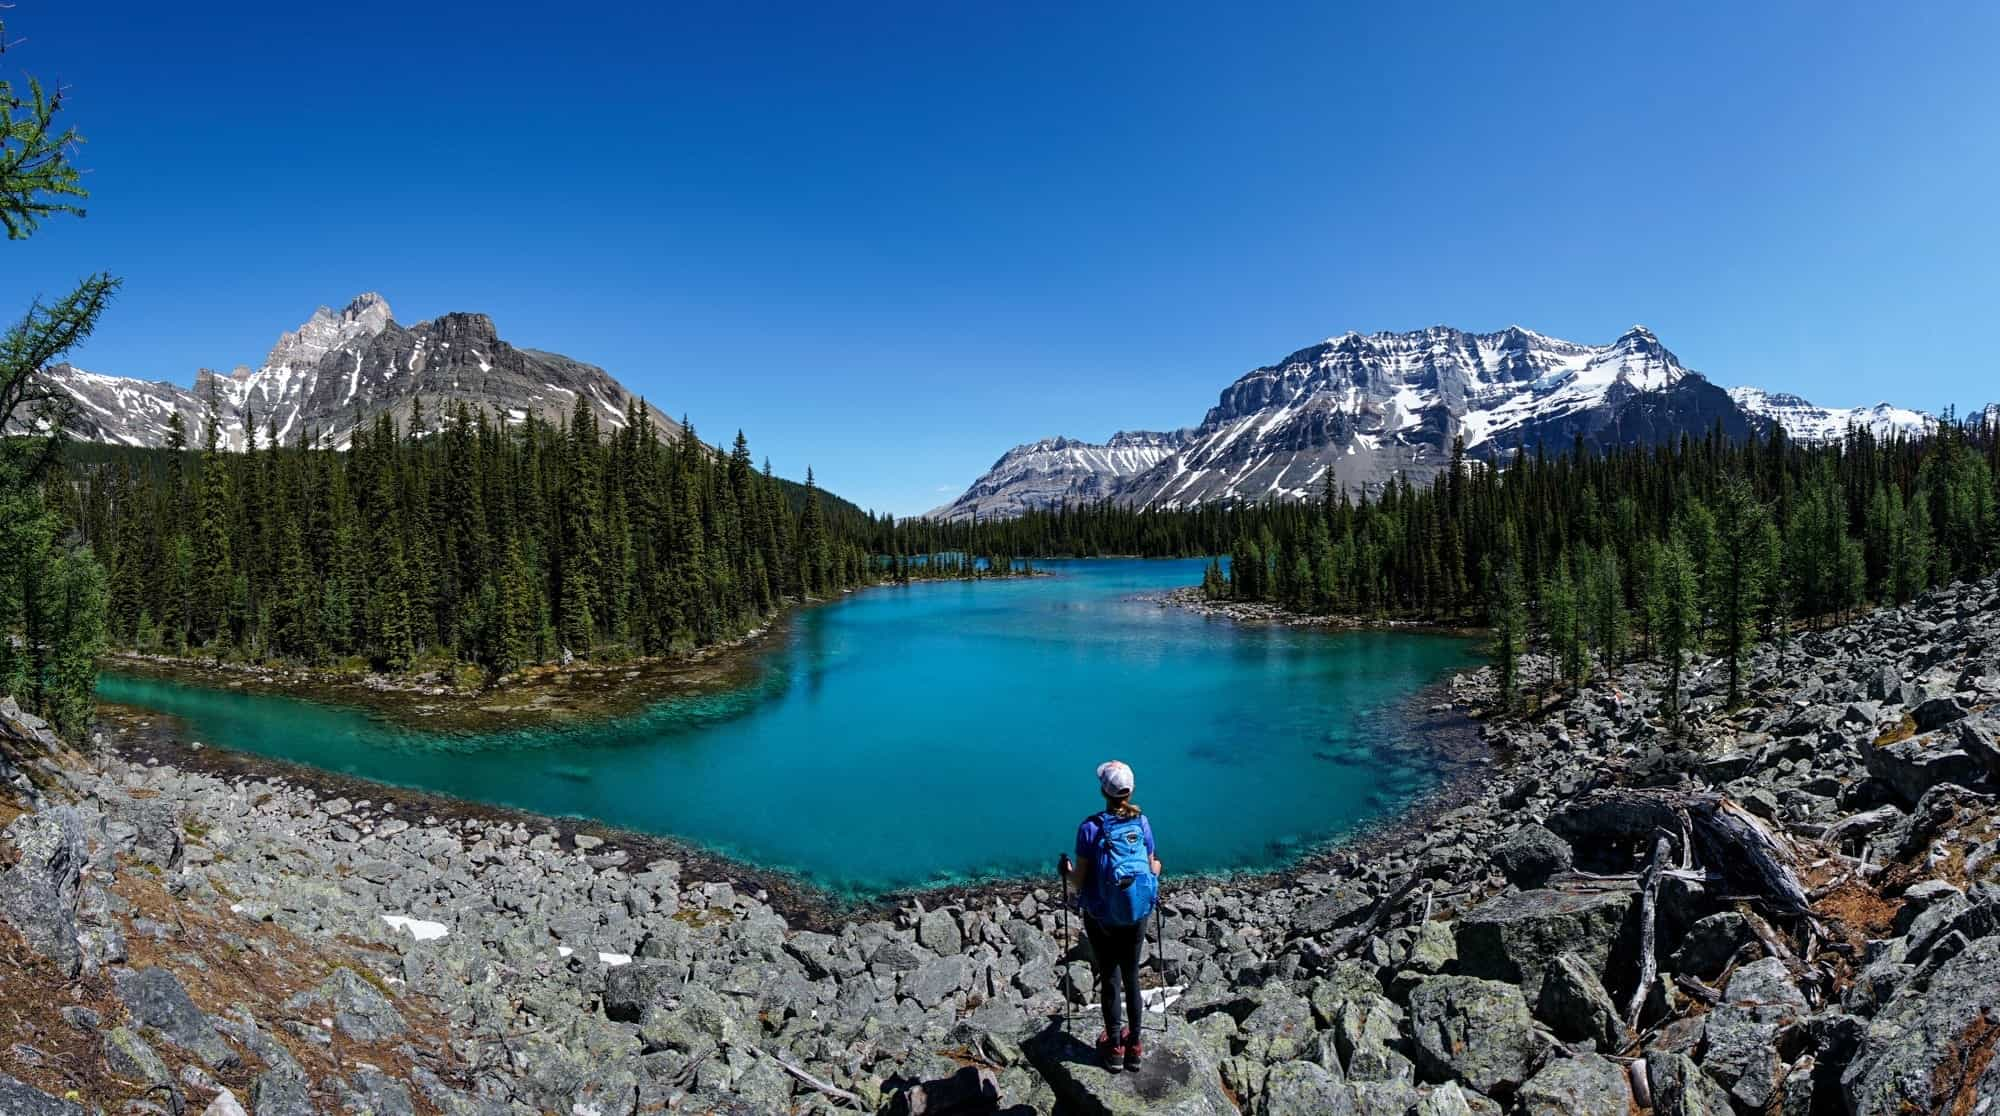 Linda Lake // Four days at Lake O'Hara was the highlight of my Canadian Rockies trip. Get my detailed hiking & camping guide to this British Columbia National Park.